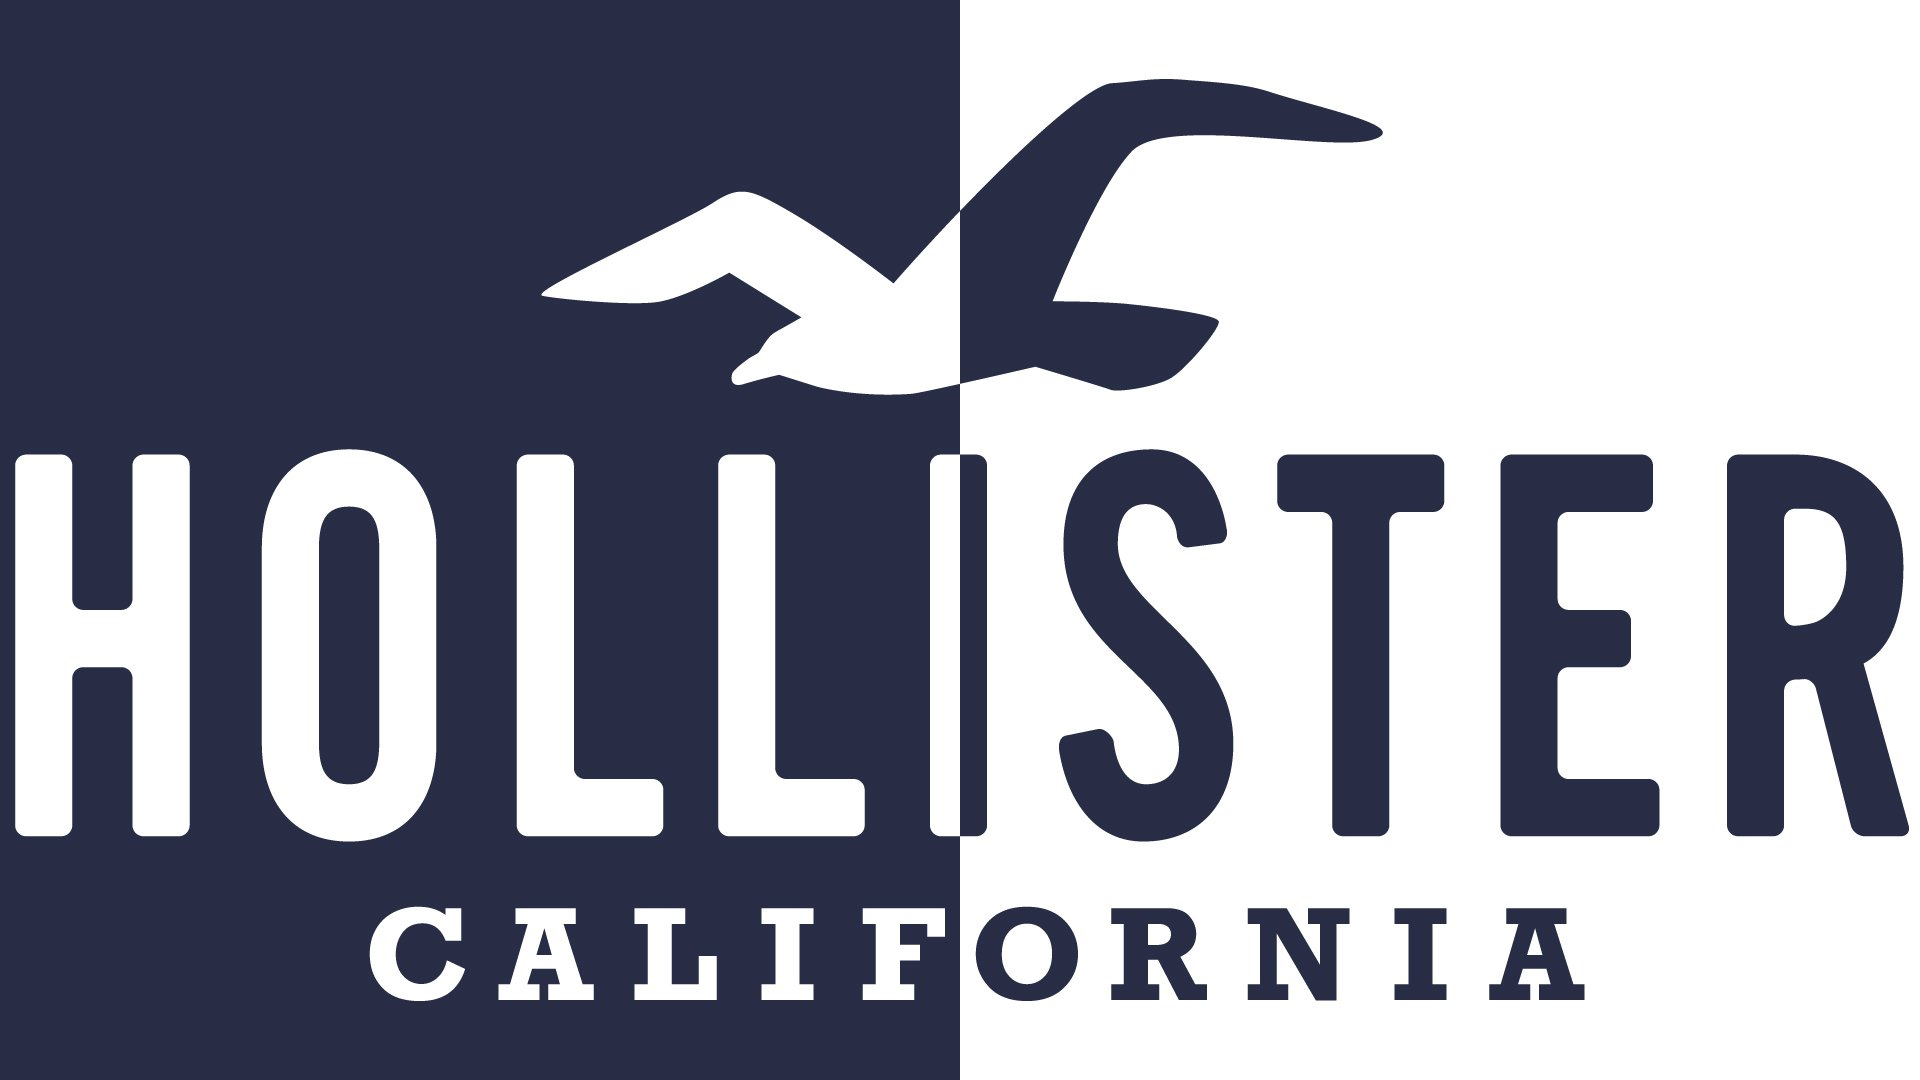 Meaning Hollister logo and symbol